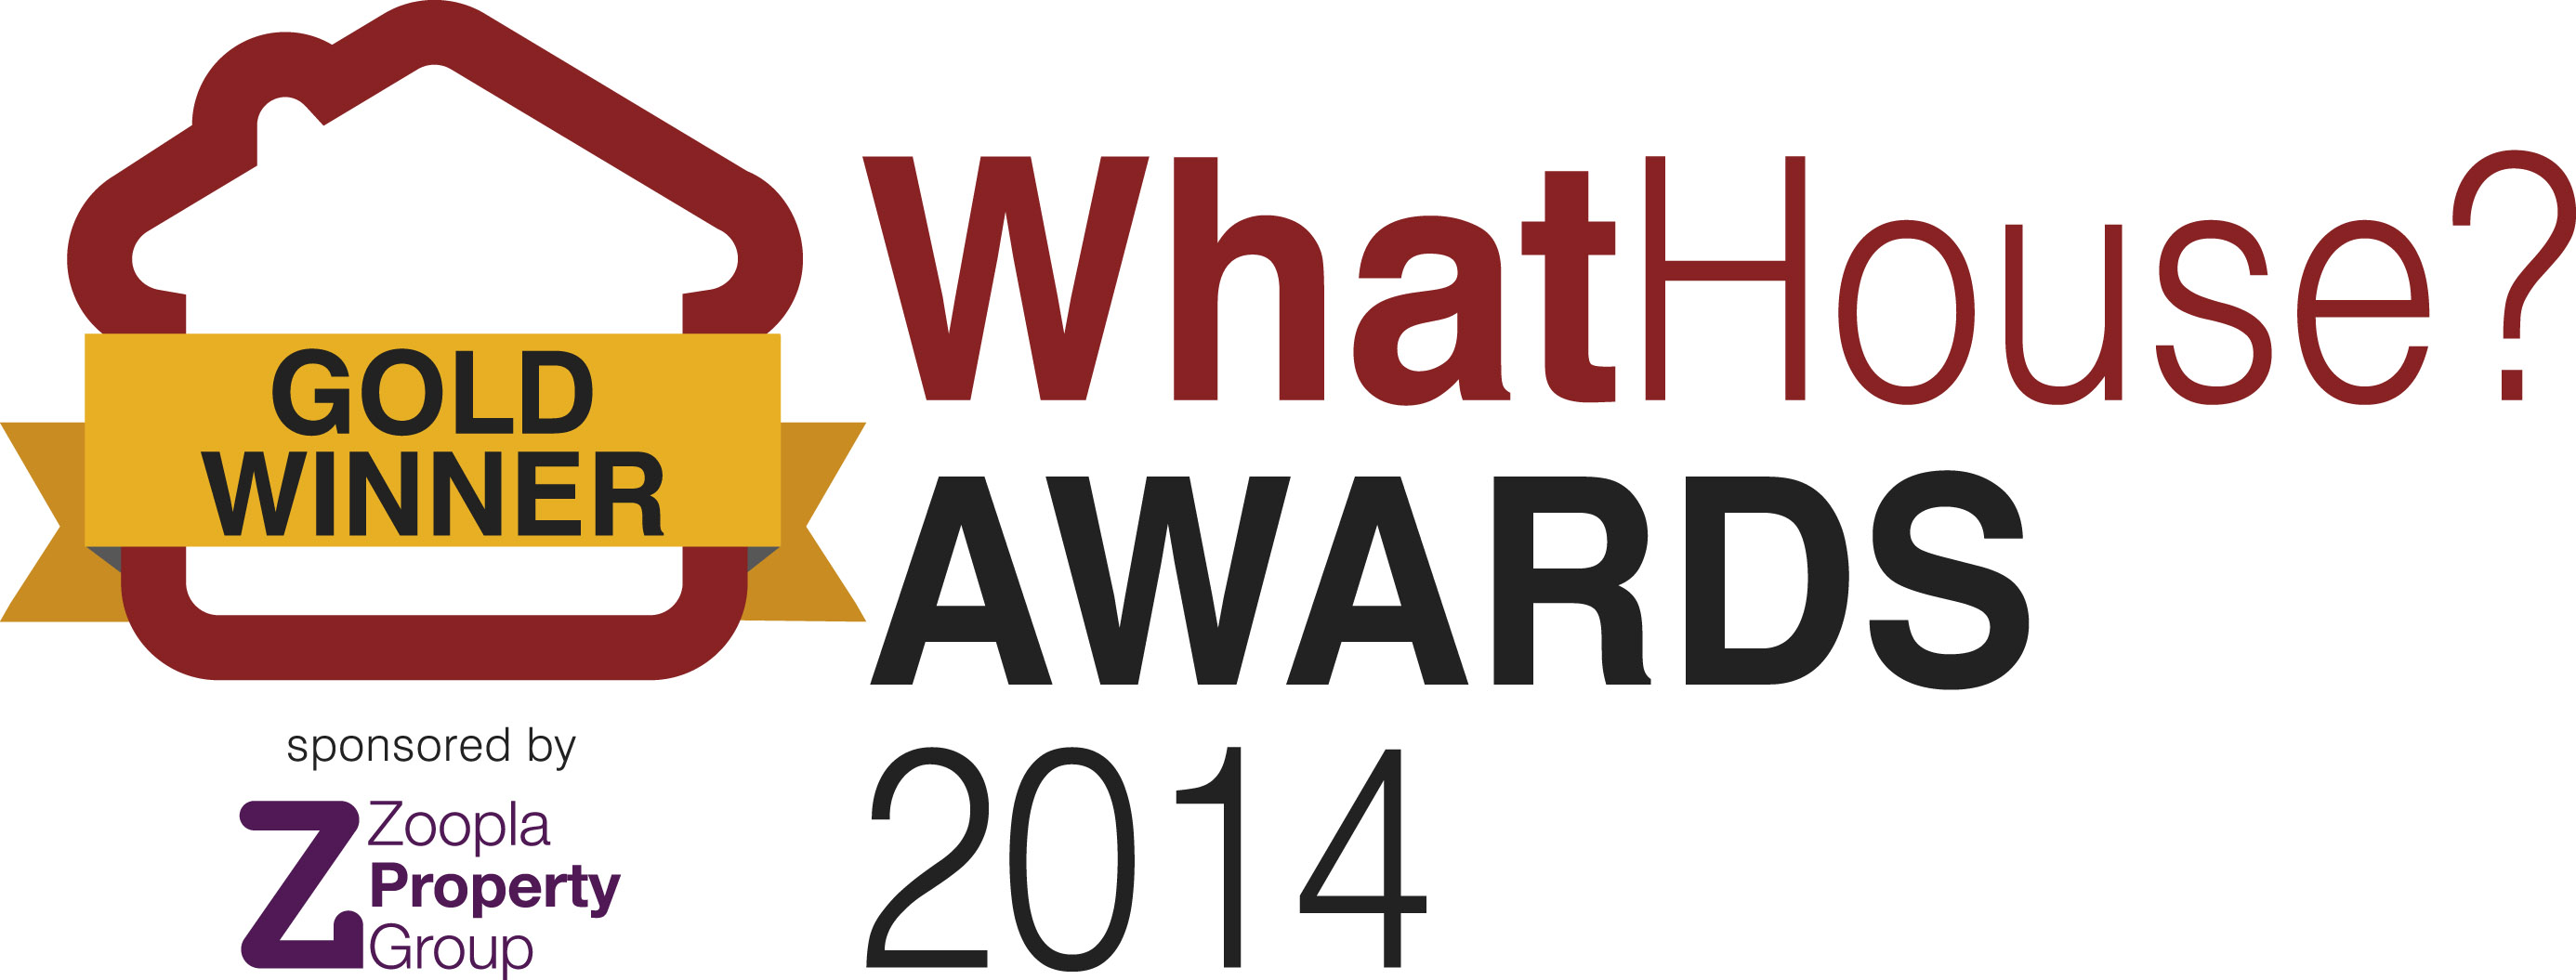 WhatHouse? Awards Winner Gold 2014